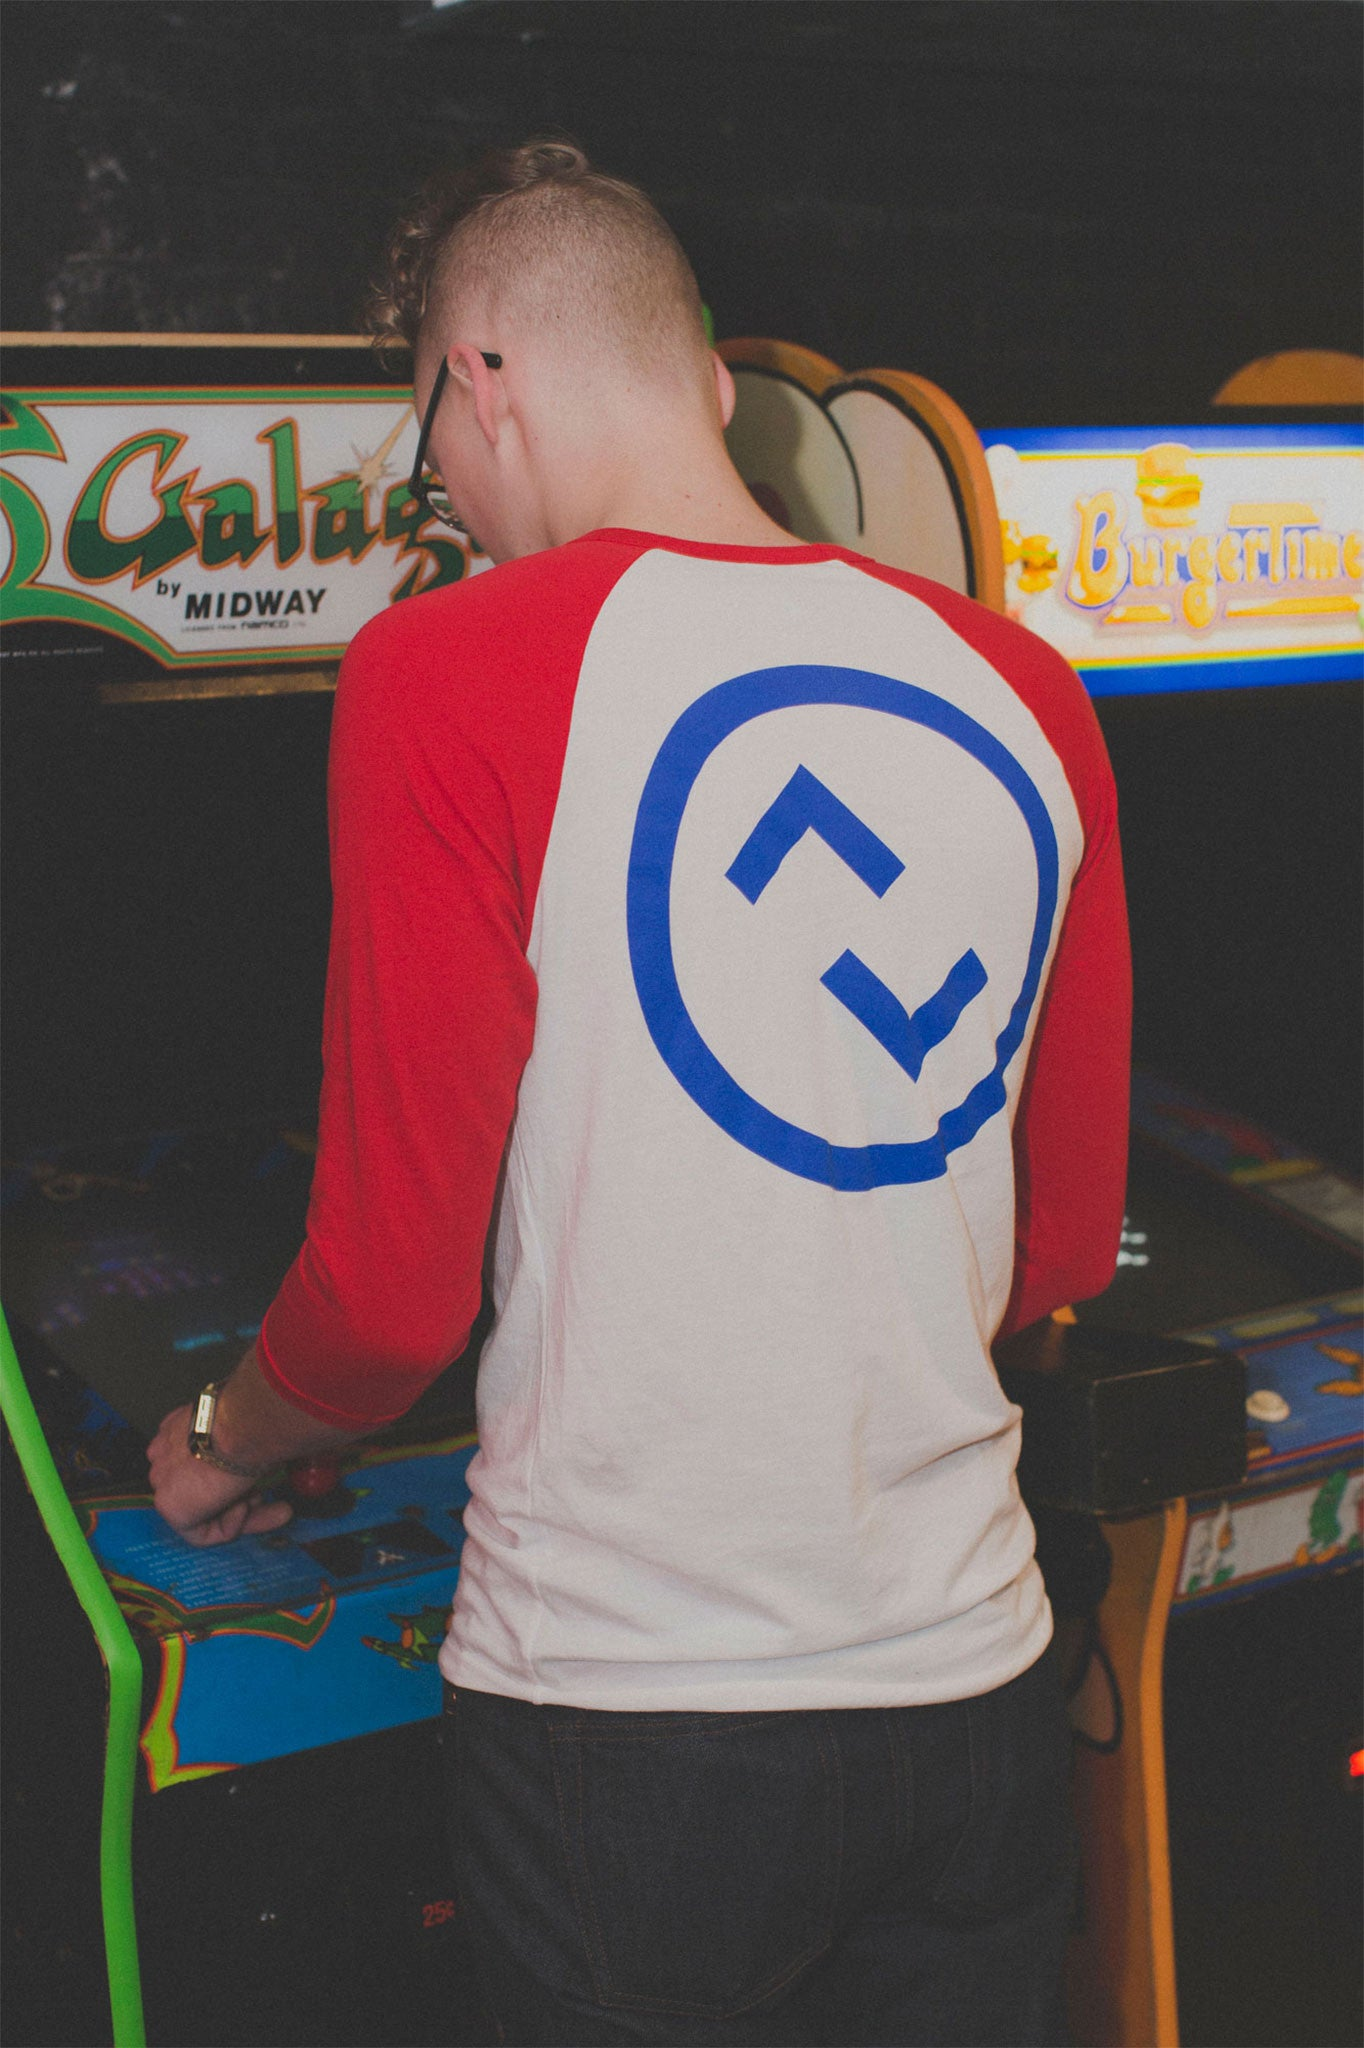 updown arcade bar baseball tee in red/white/blue